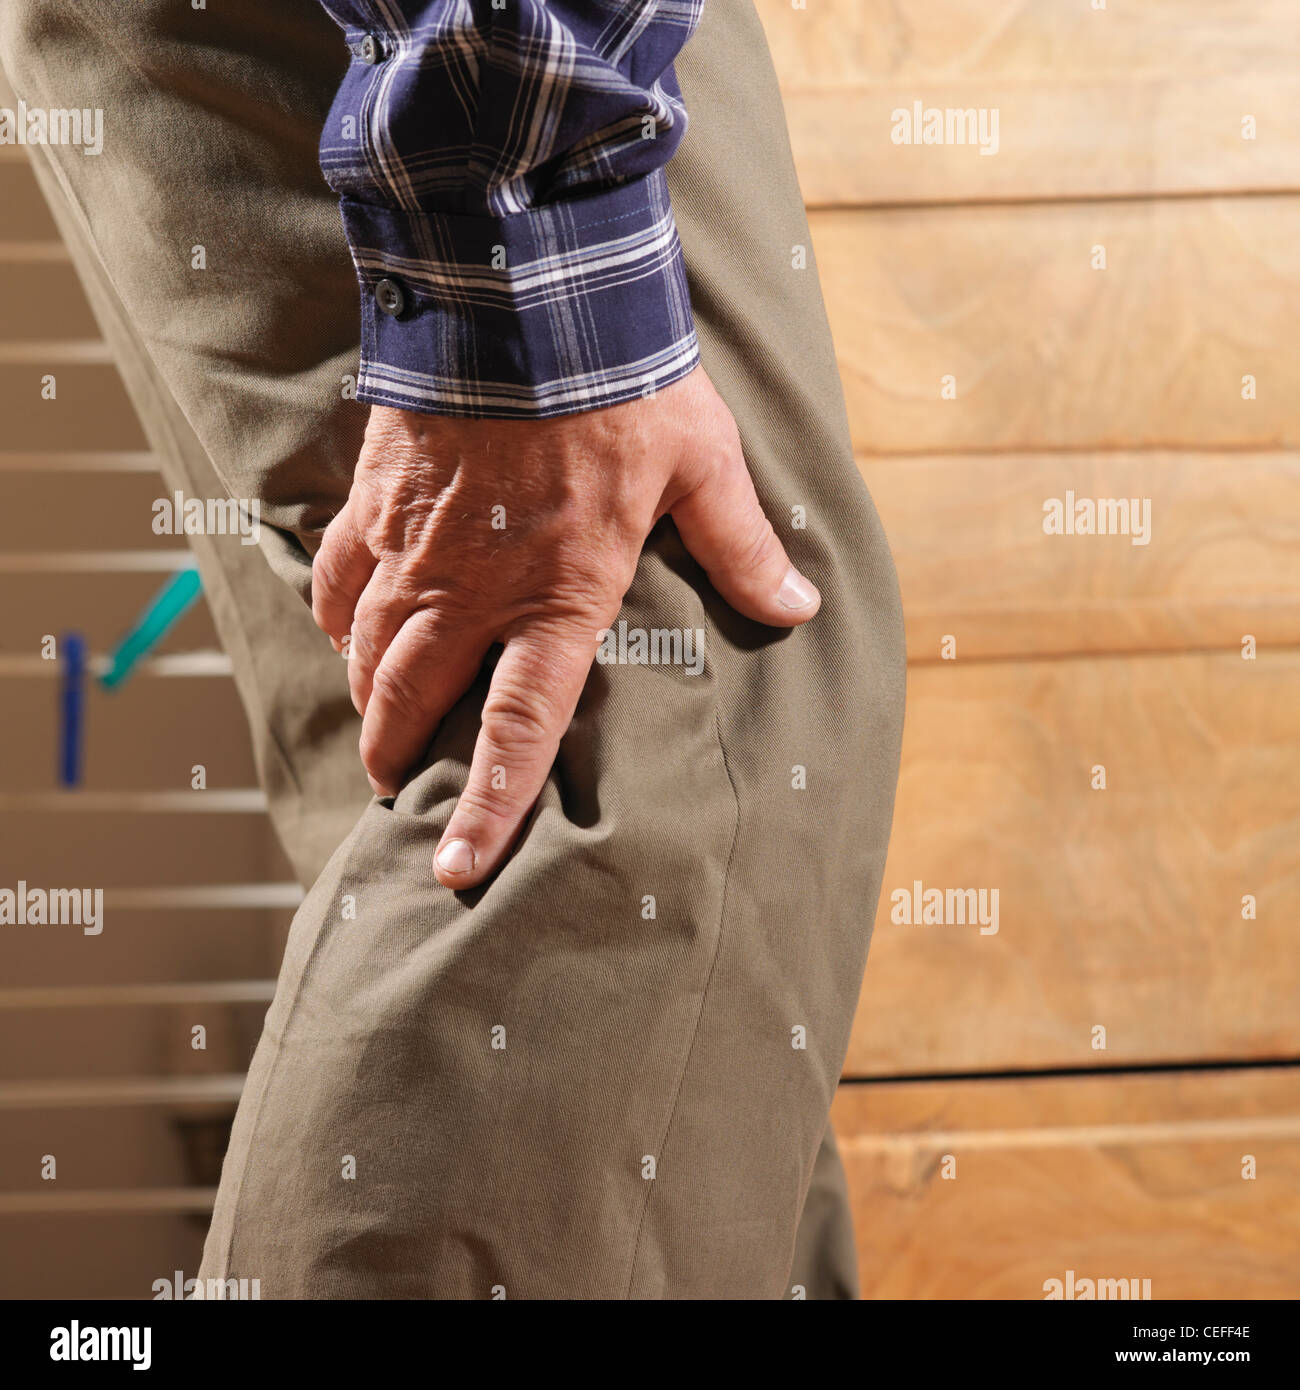 Older man rubbing back of his knee - Stock Image